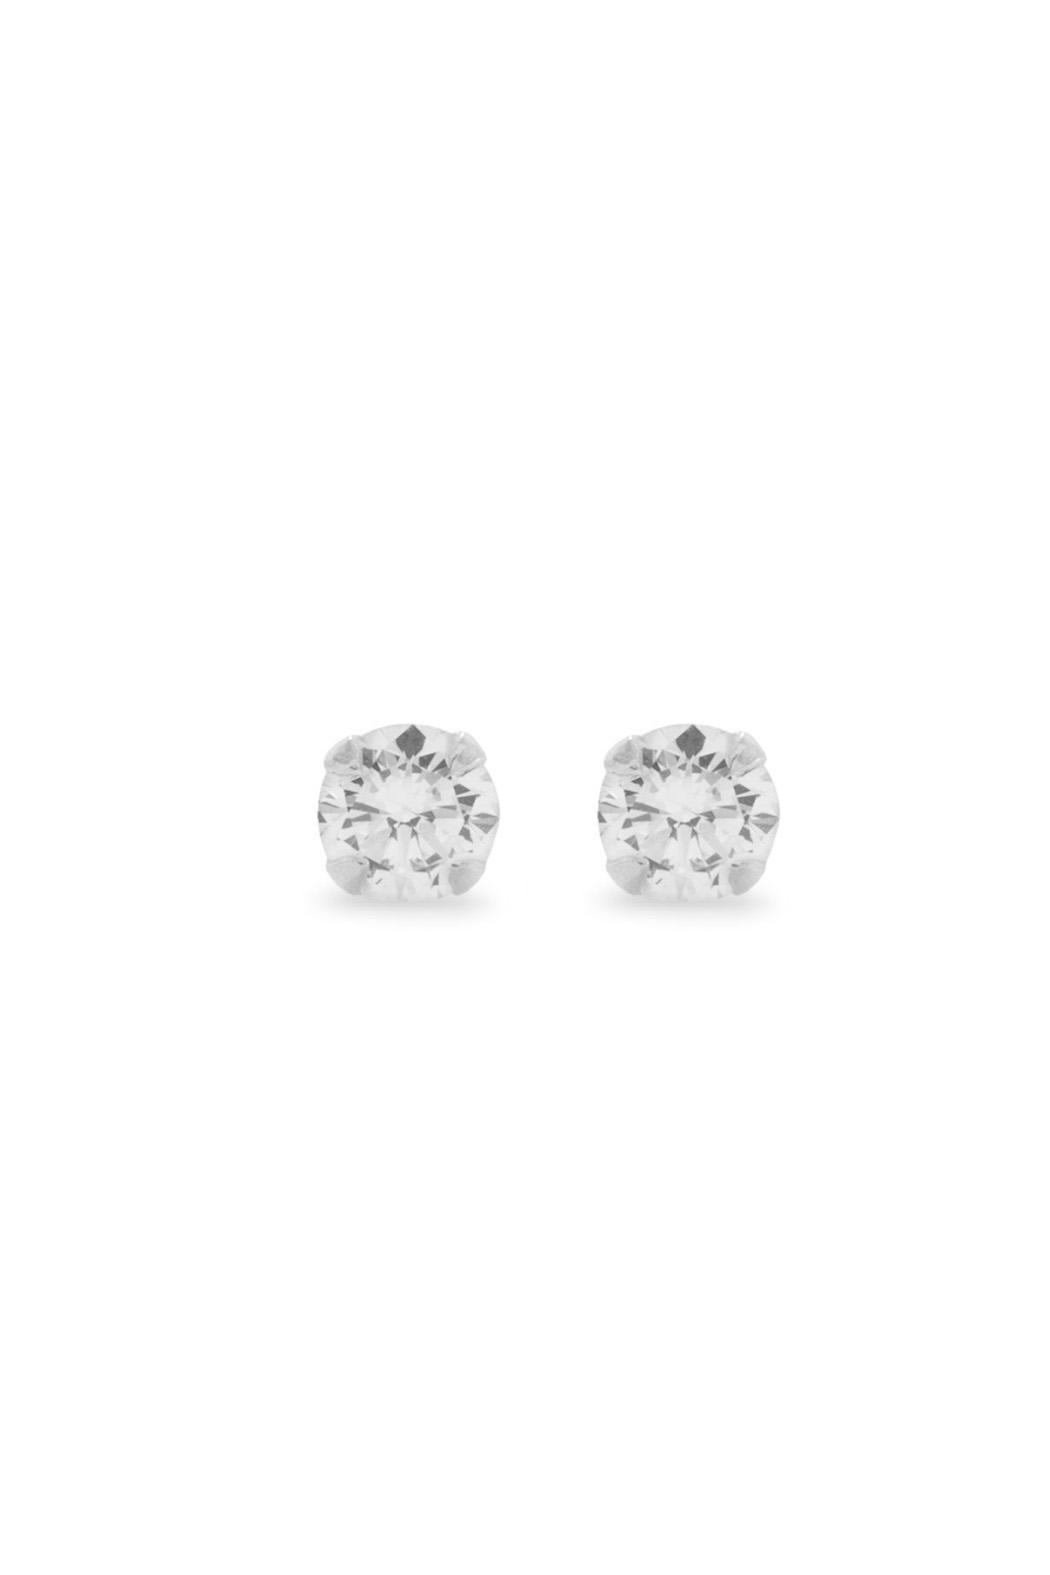 Wild Lilies Jewelry  Cz Stud Earrings - Main Image